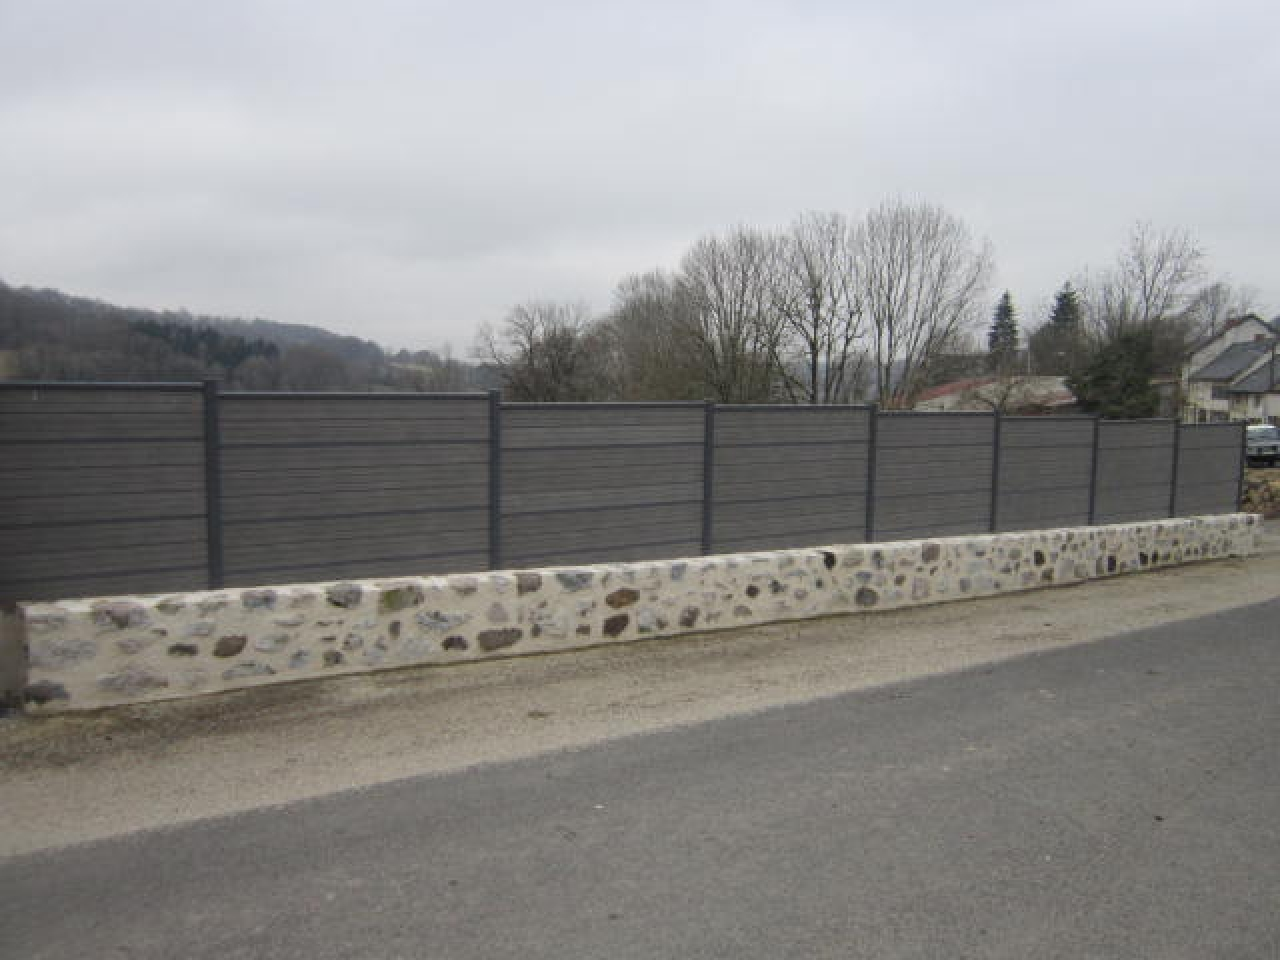 Construction cl tures aurillac cantal for Cloture de pierre